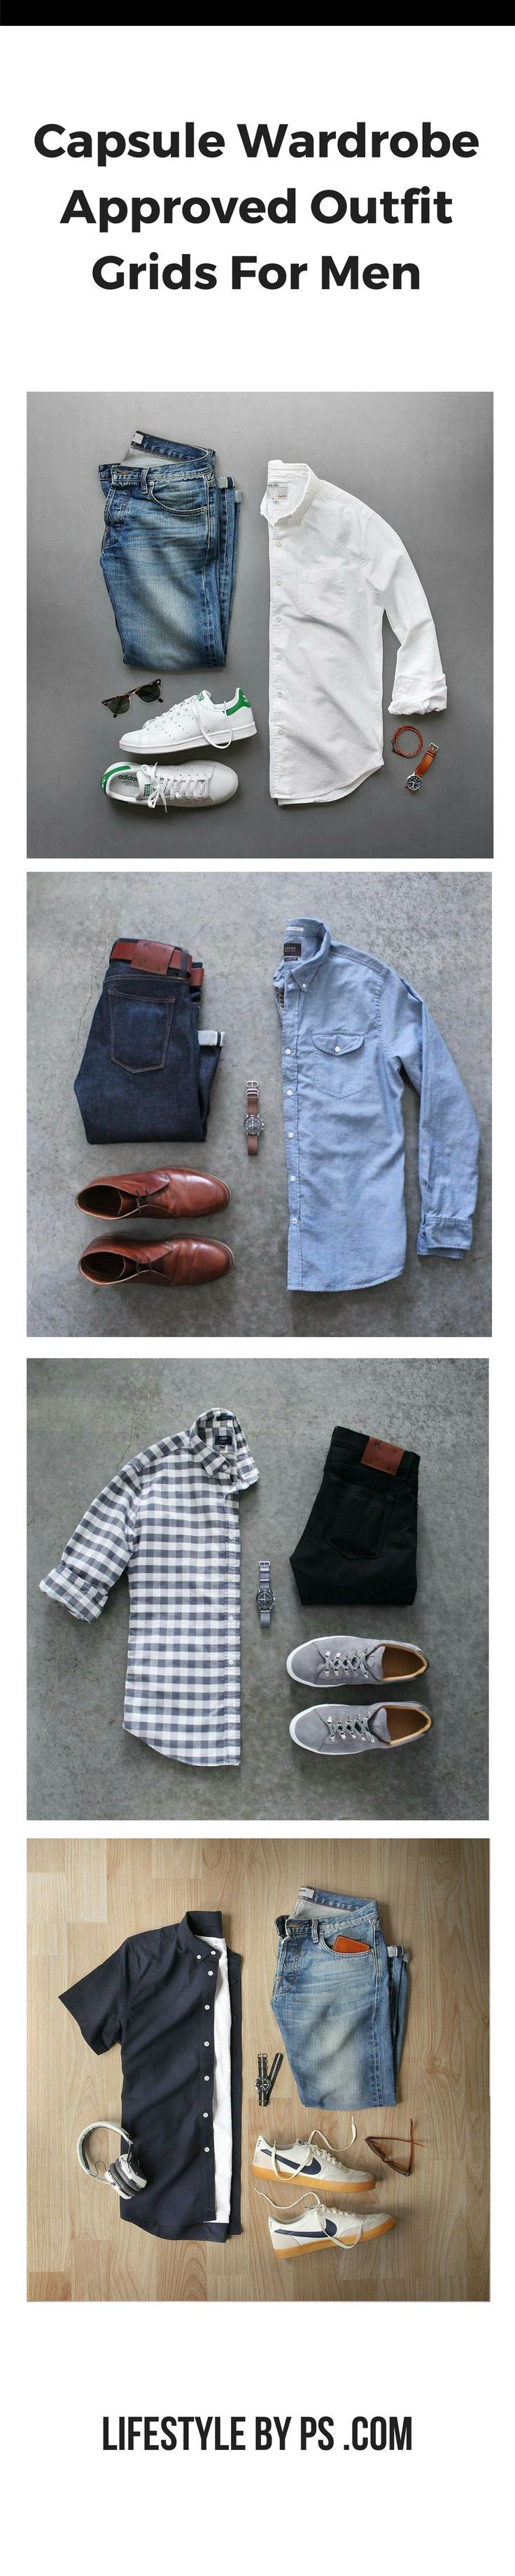 Capsule Wardrobe Outfit Grids For Men. #mens #fashion - https://www.luxury.guugles.com/capsule-wardrobe-outfit-grids-for-men-mens-fashion/